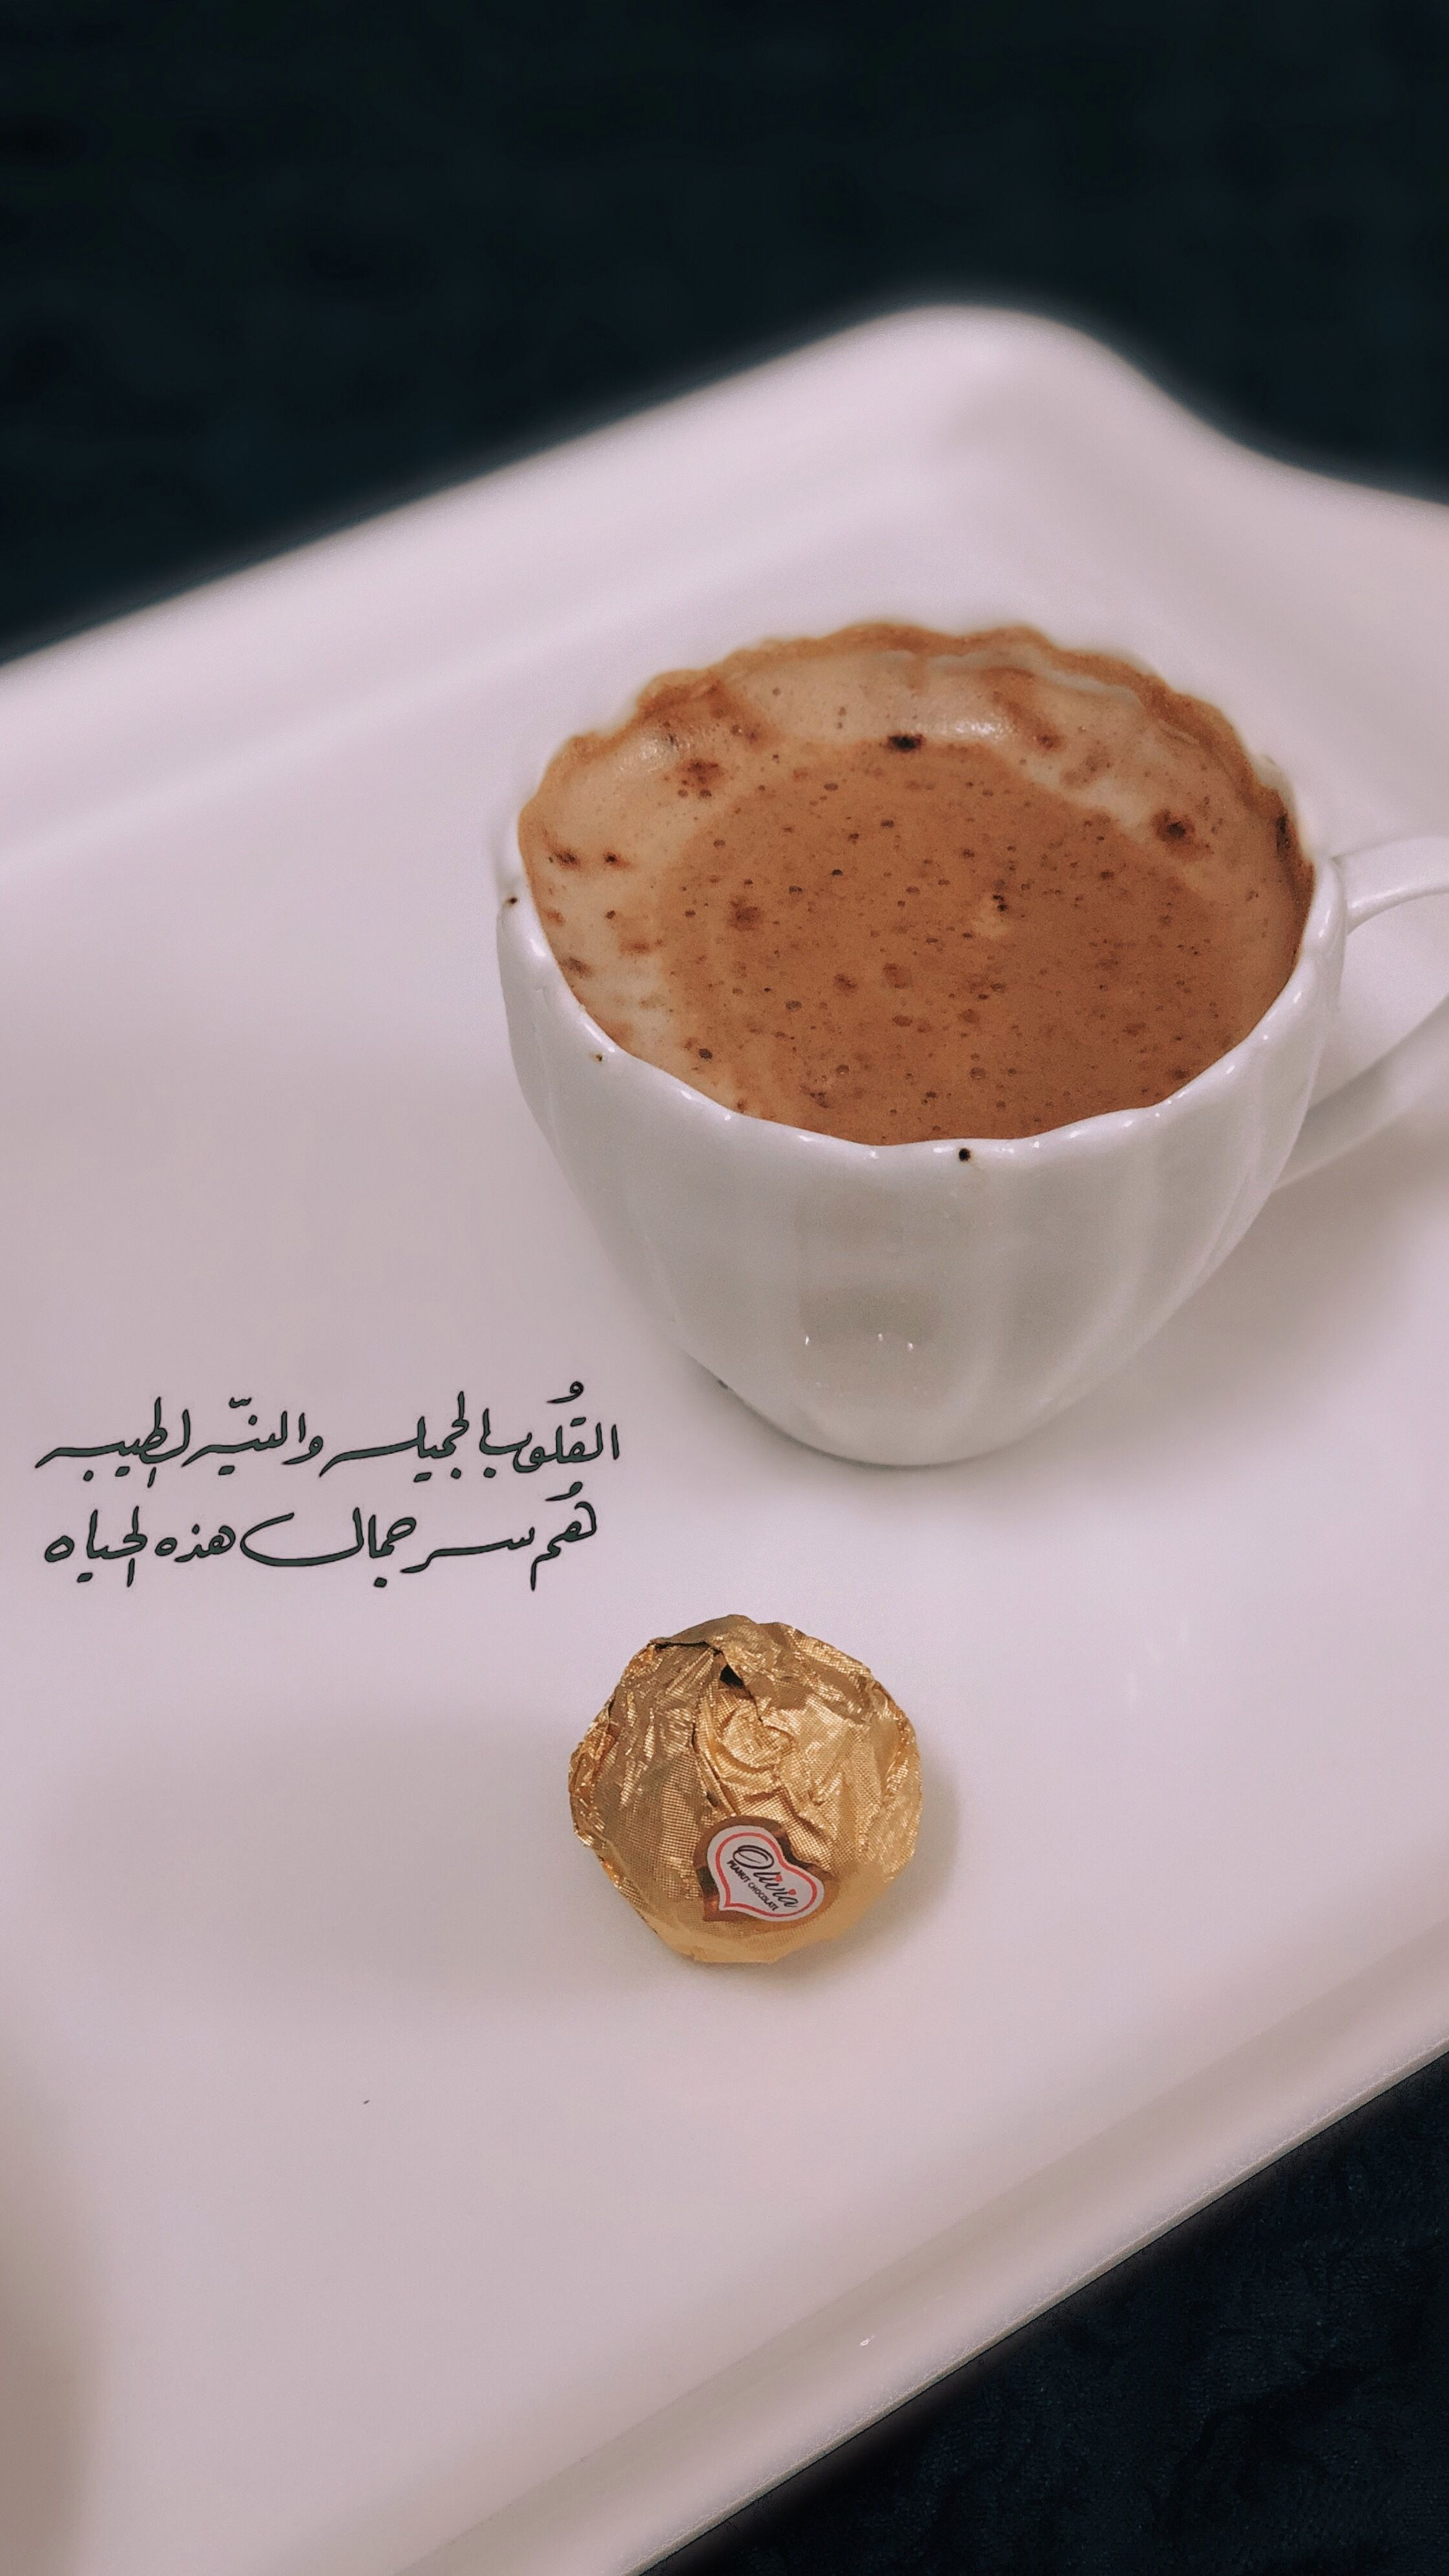 Pin By مرتضى احمد عثمان On يوميات Coffee And Books Coffee Bars In Kitchen Coffee Quotes